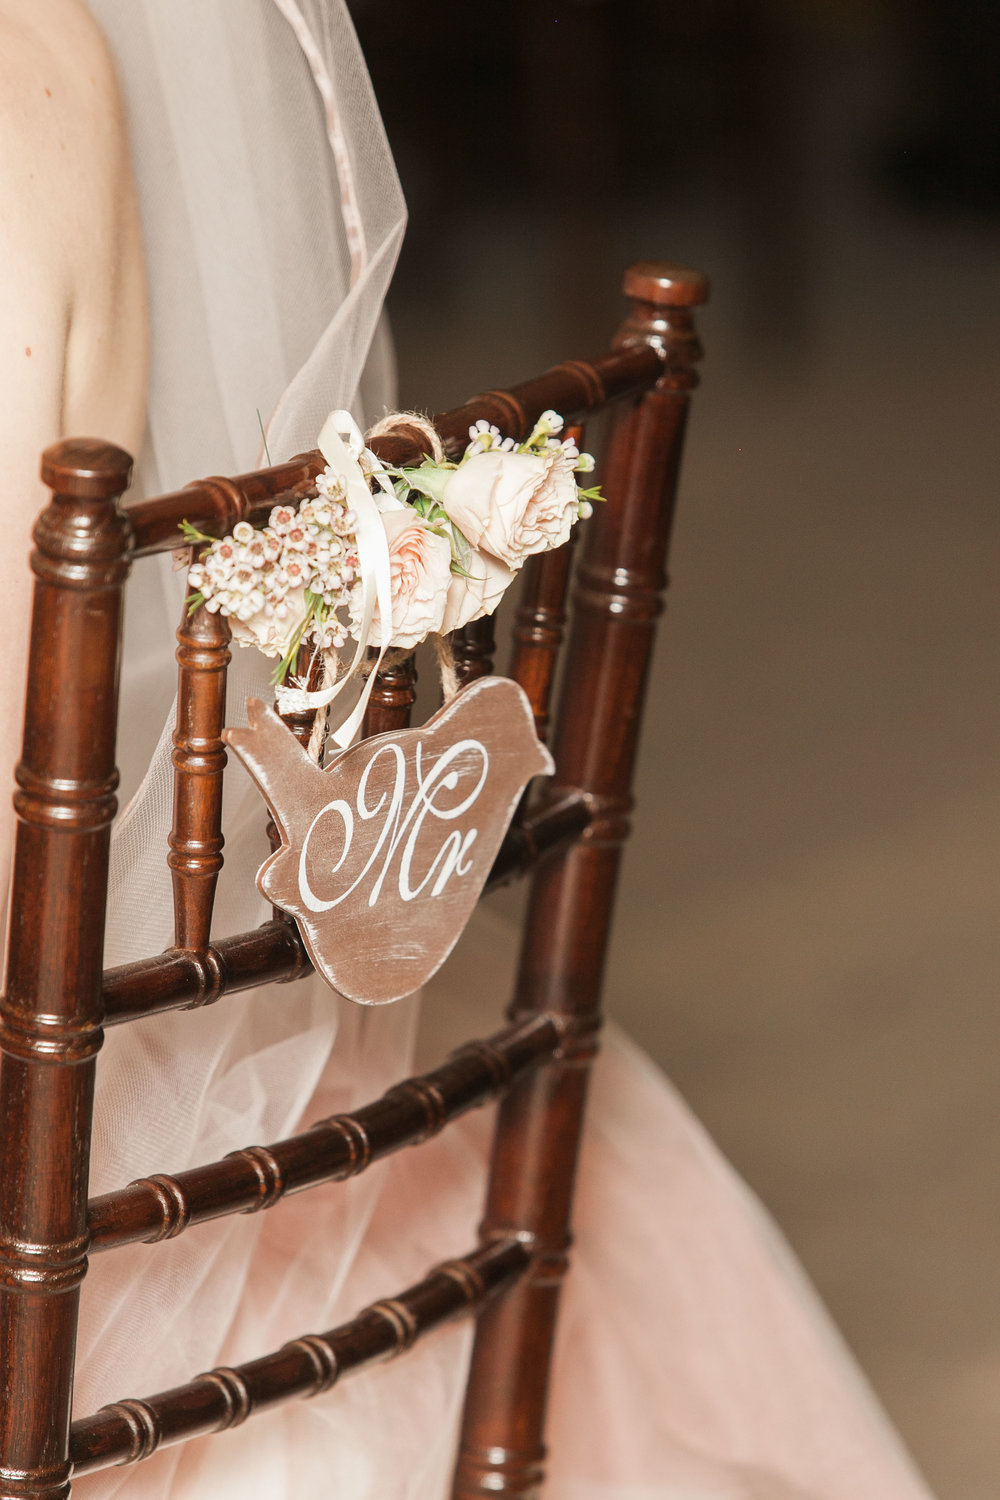 Antique wedding details at vineyard wedding